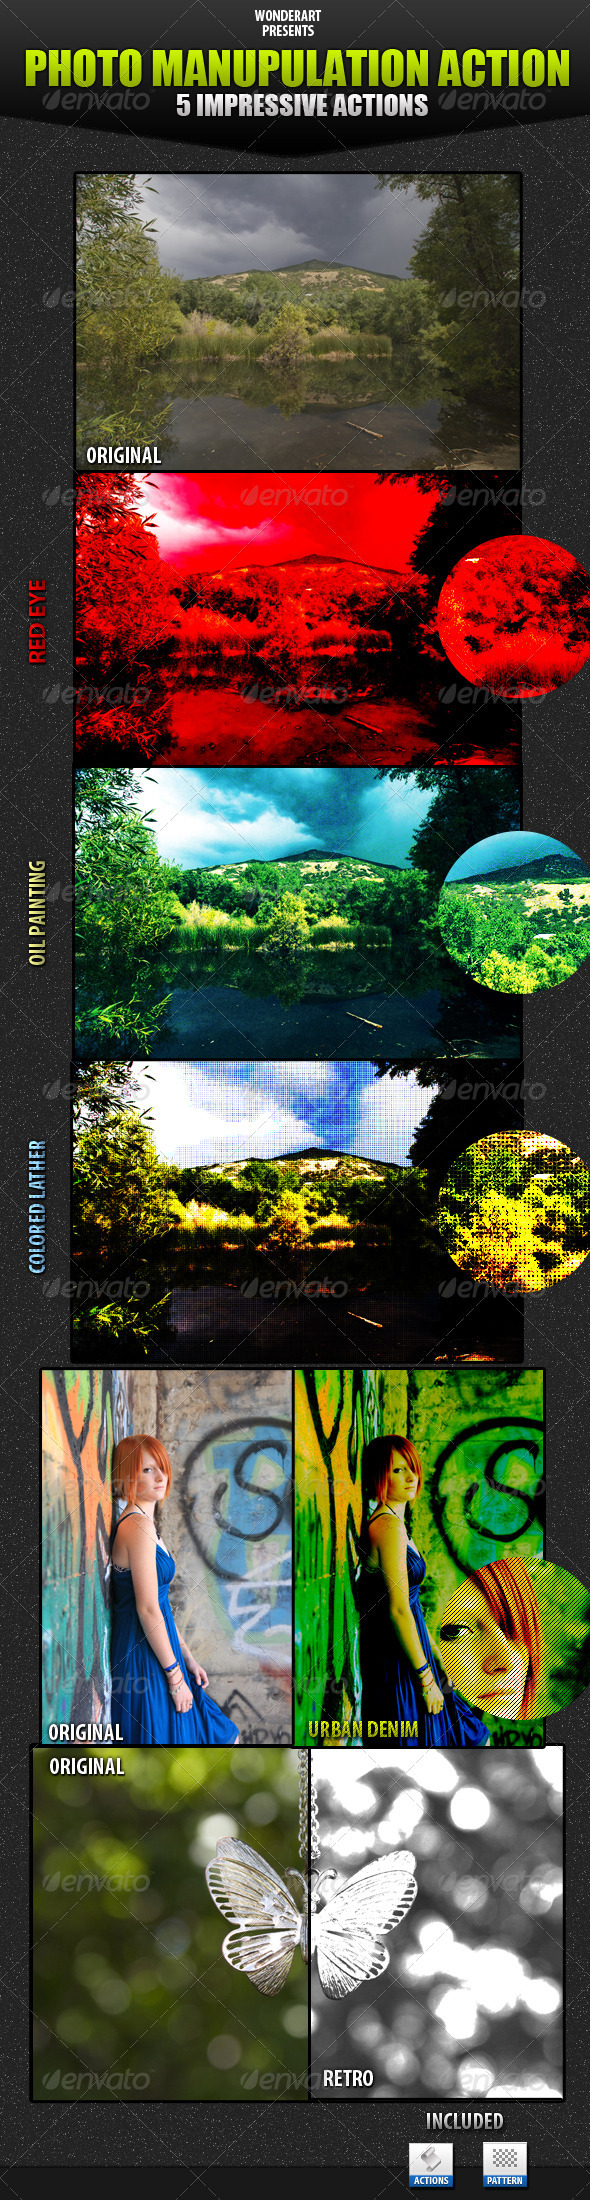 Graphic River Photo Manupulating Action Add-ons -  Photoshop  Actions  Photo Effects 161666